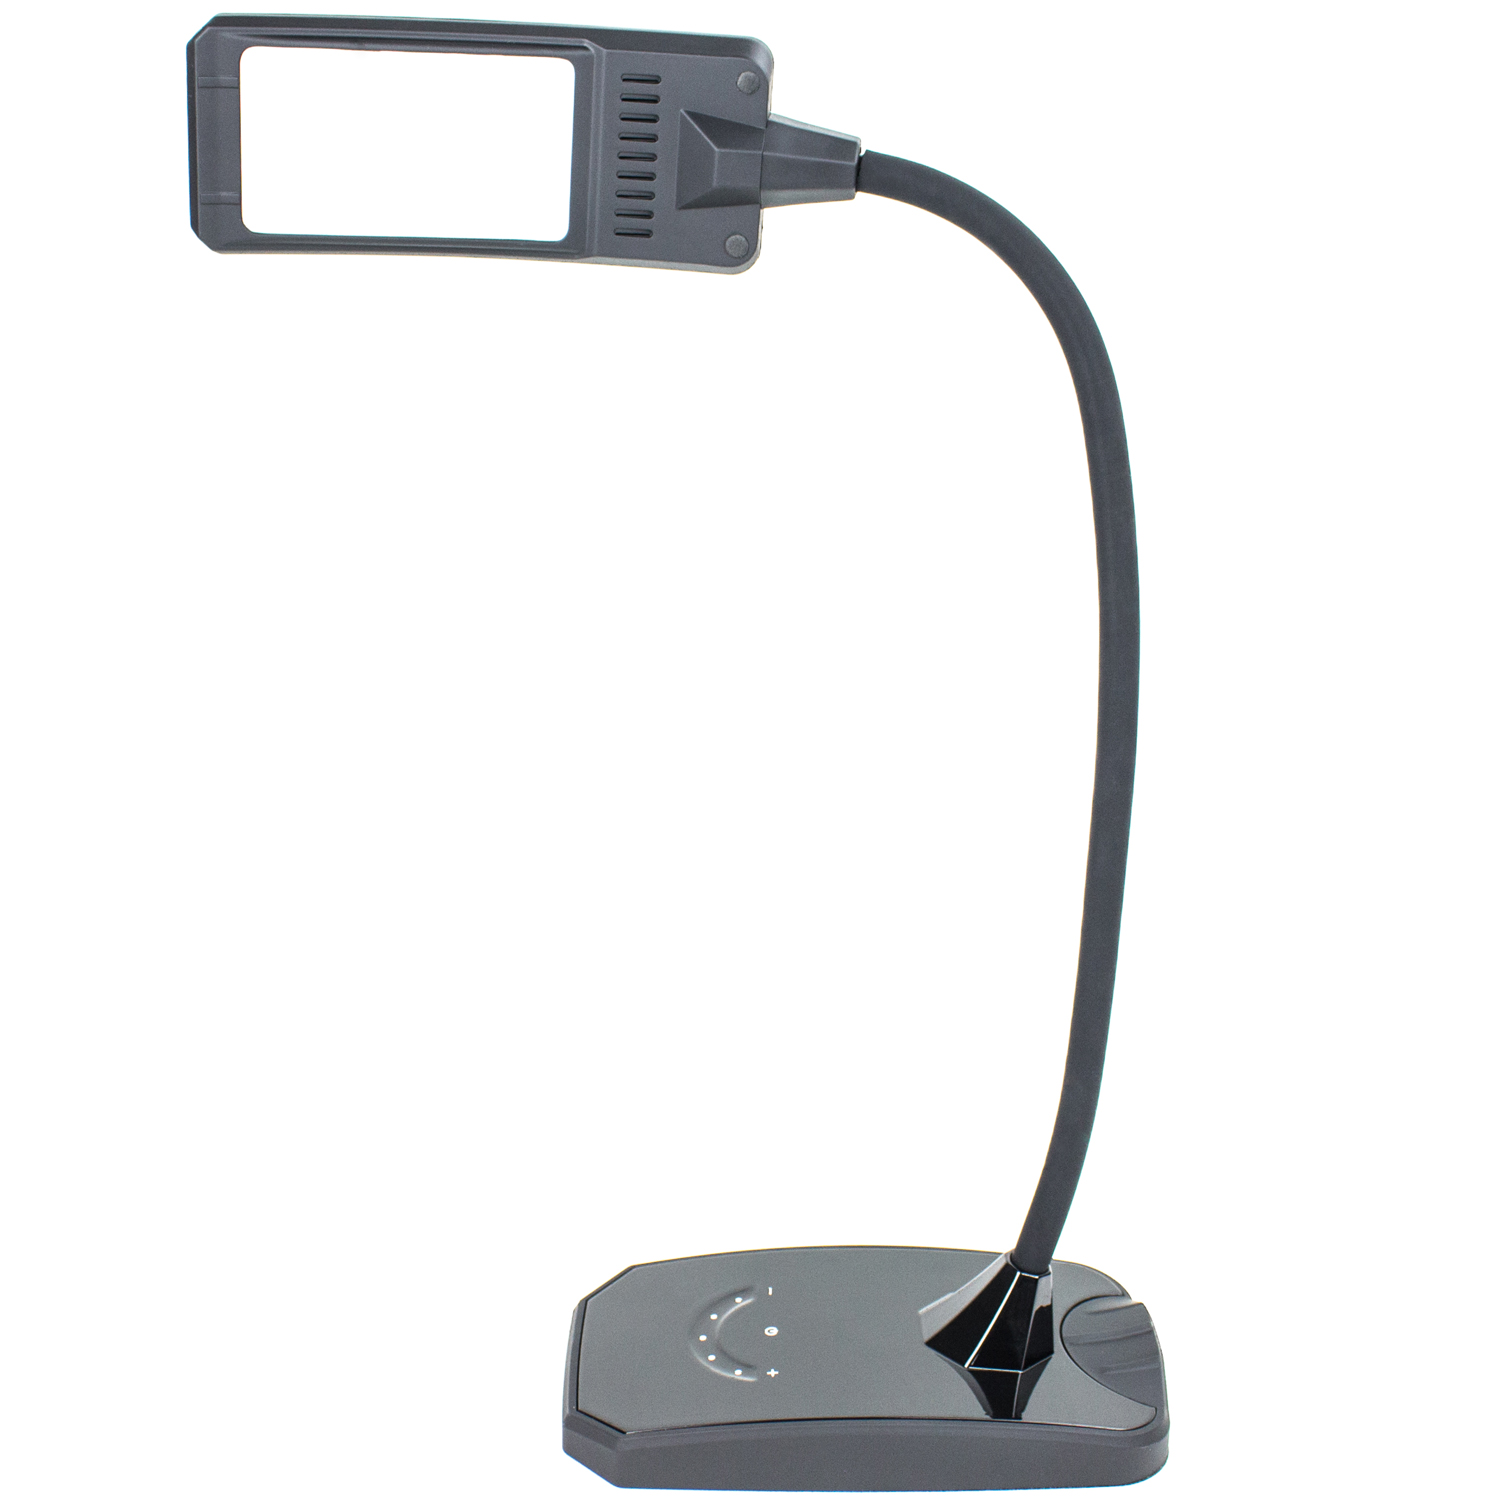 6w Led Desk Lamp W Dimmer And Usb Charging Port Outlet